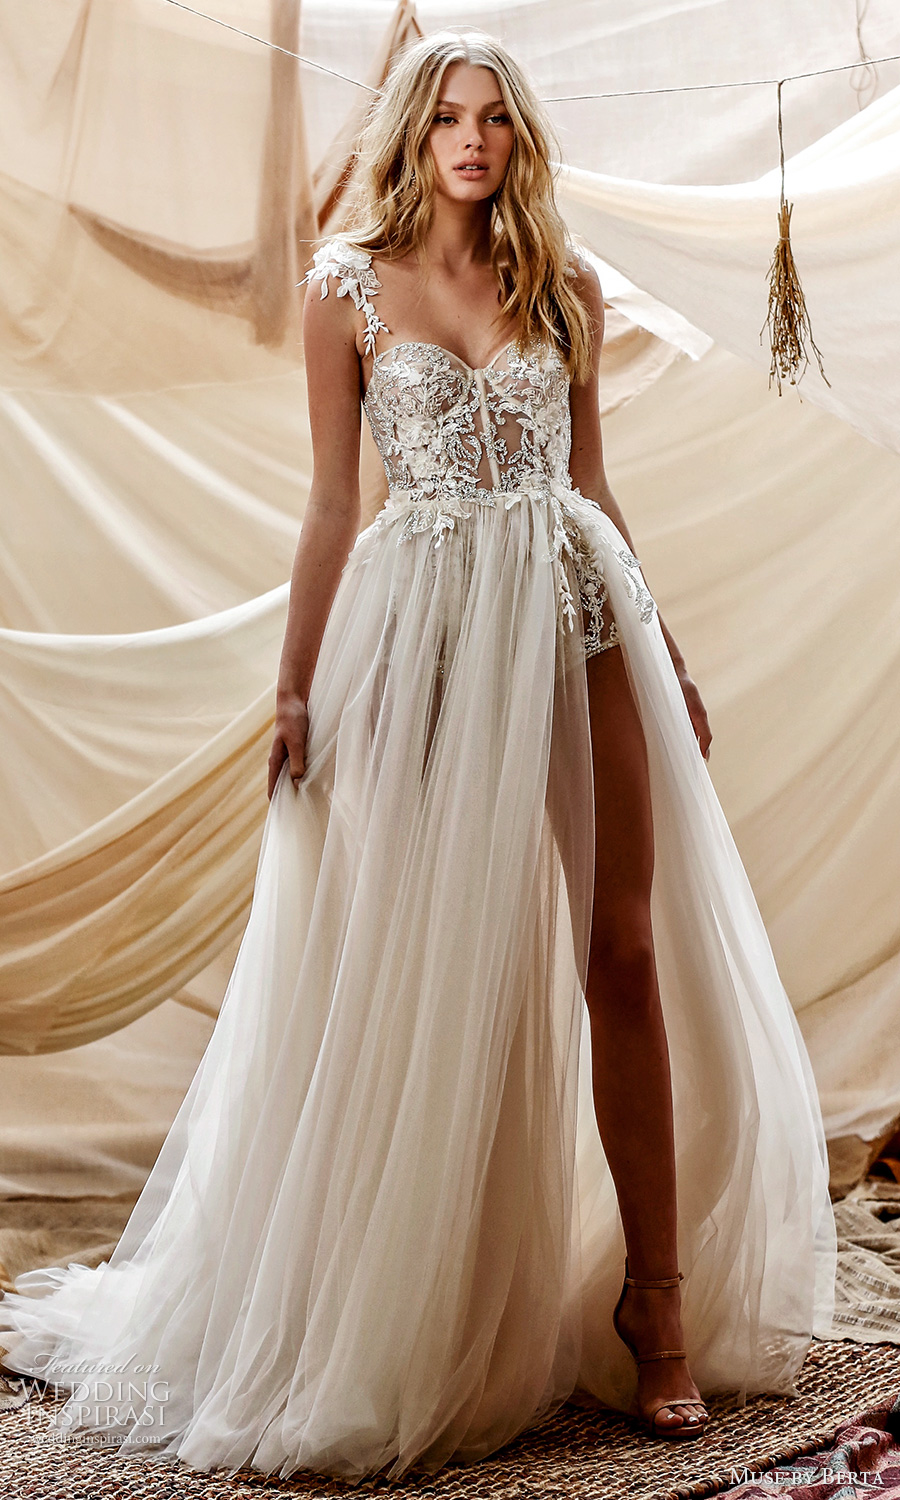 muse by berta spring 2021 bridal sleeveless lace straps sweetheart neckline embllished sheer bodice a line ball gown wedding dress chapel train (7) mv